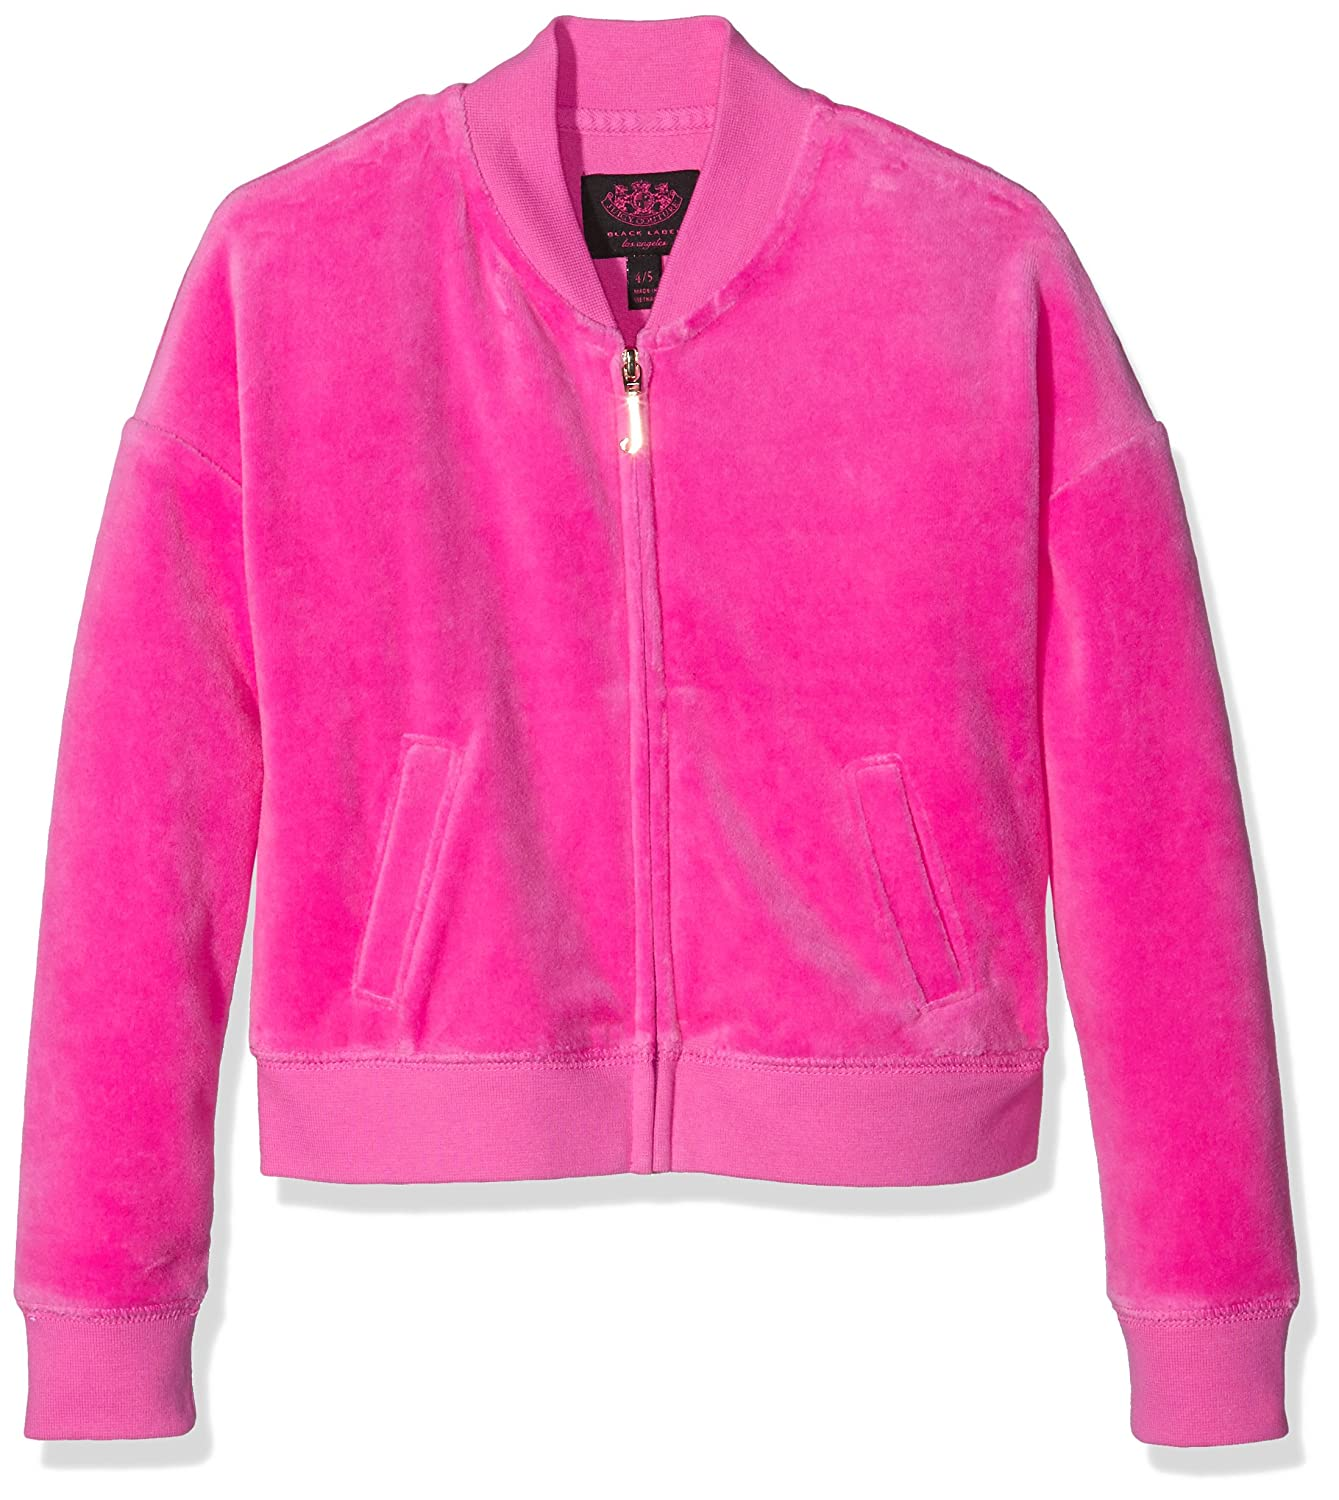 Juicy Couture, uk apparel, JUII9 Mädchen Kapuzenpullover Logo Vlr Glam Ring Wd Jacket